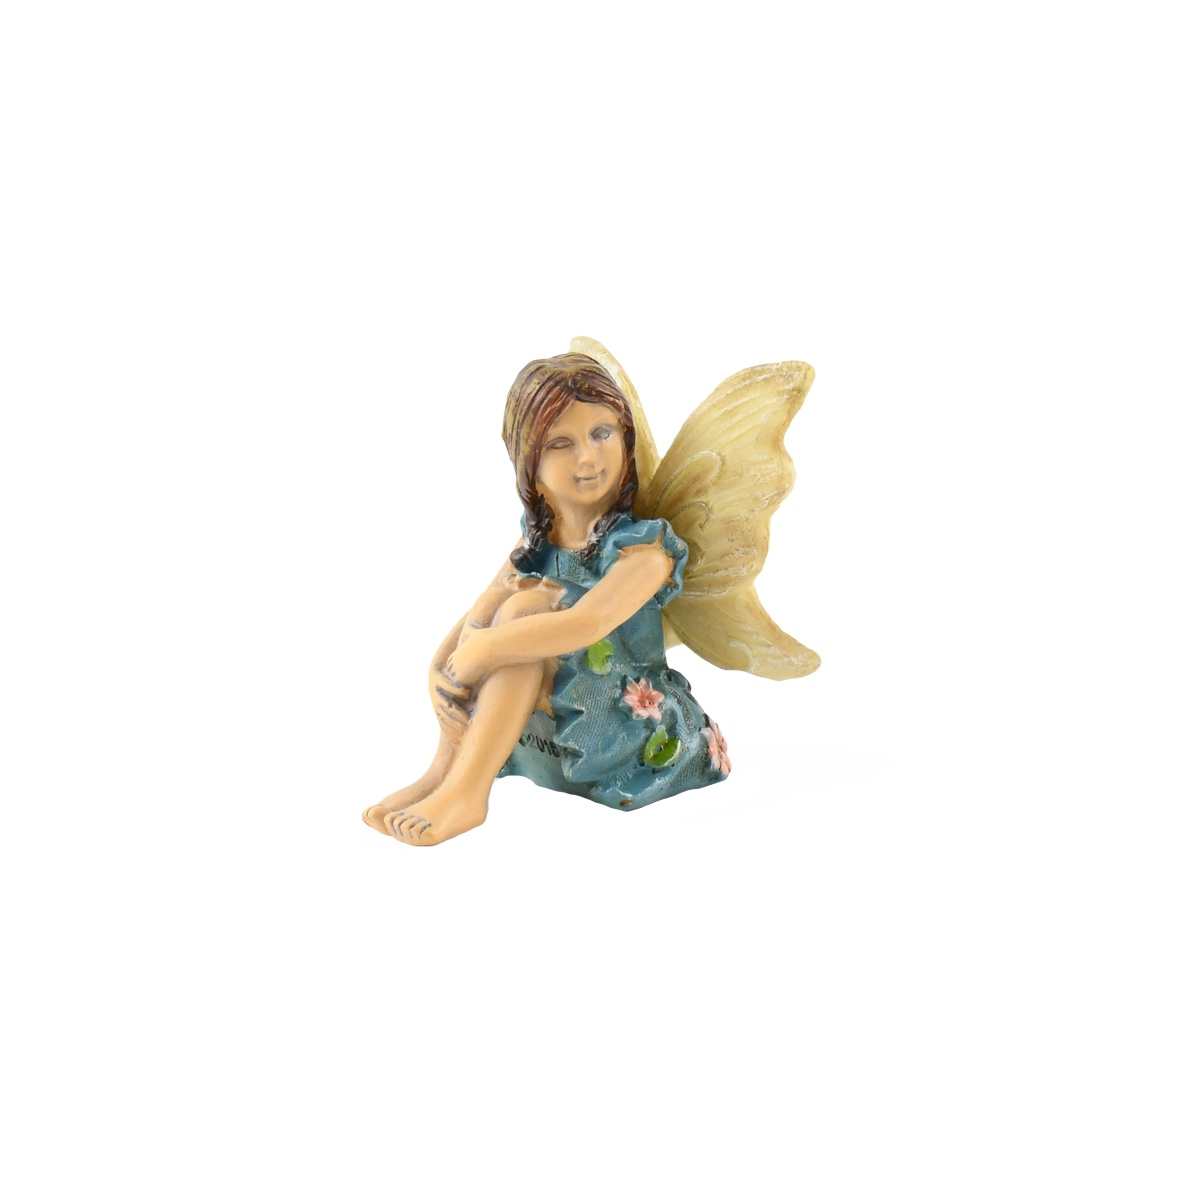 Miniature Fairy Girl Sitting Figurine Garden Accessory Dollhouse Ornament by